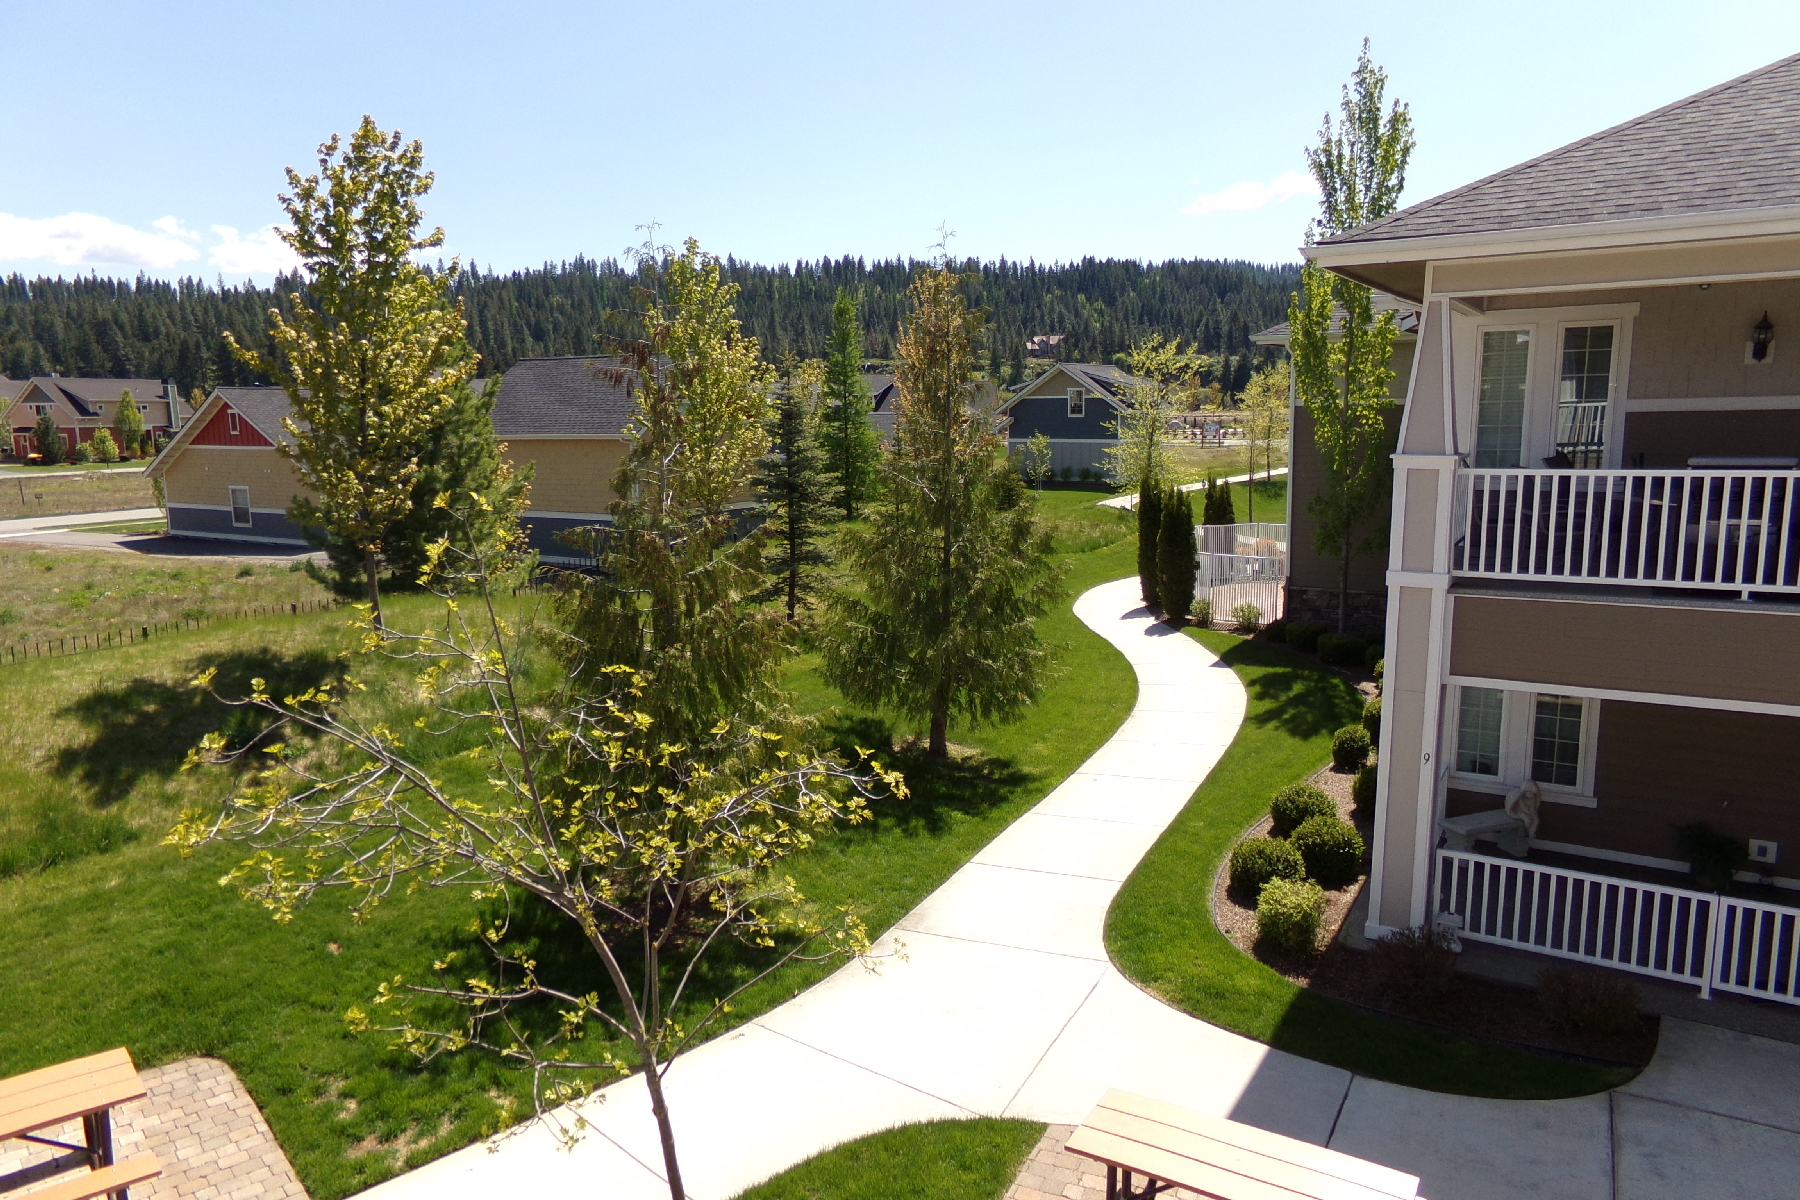 Condominium for Sale at The Condos at Mill River 4577 W Greenchain Loop #2 Coeur D Alene, Idaho, 83814 United States